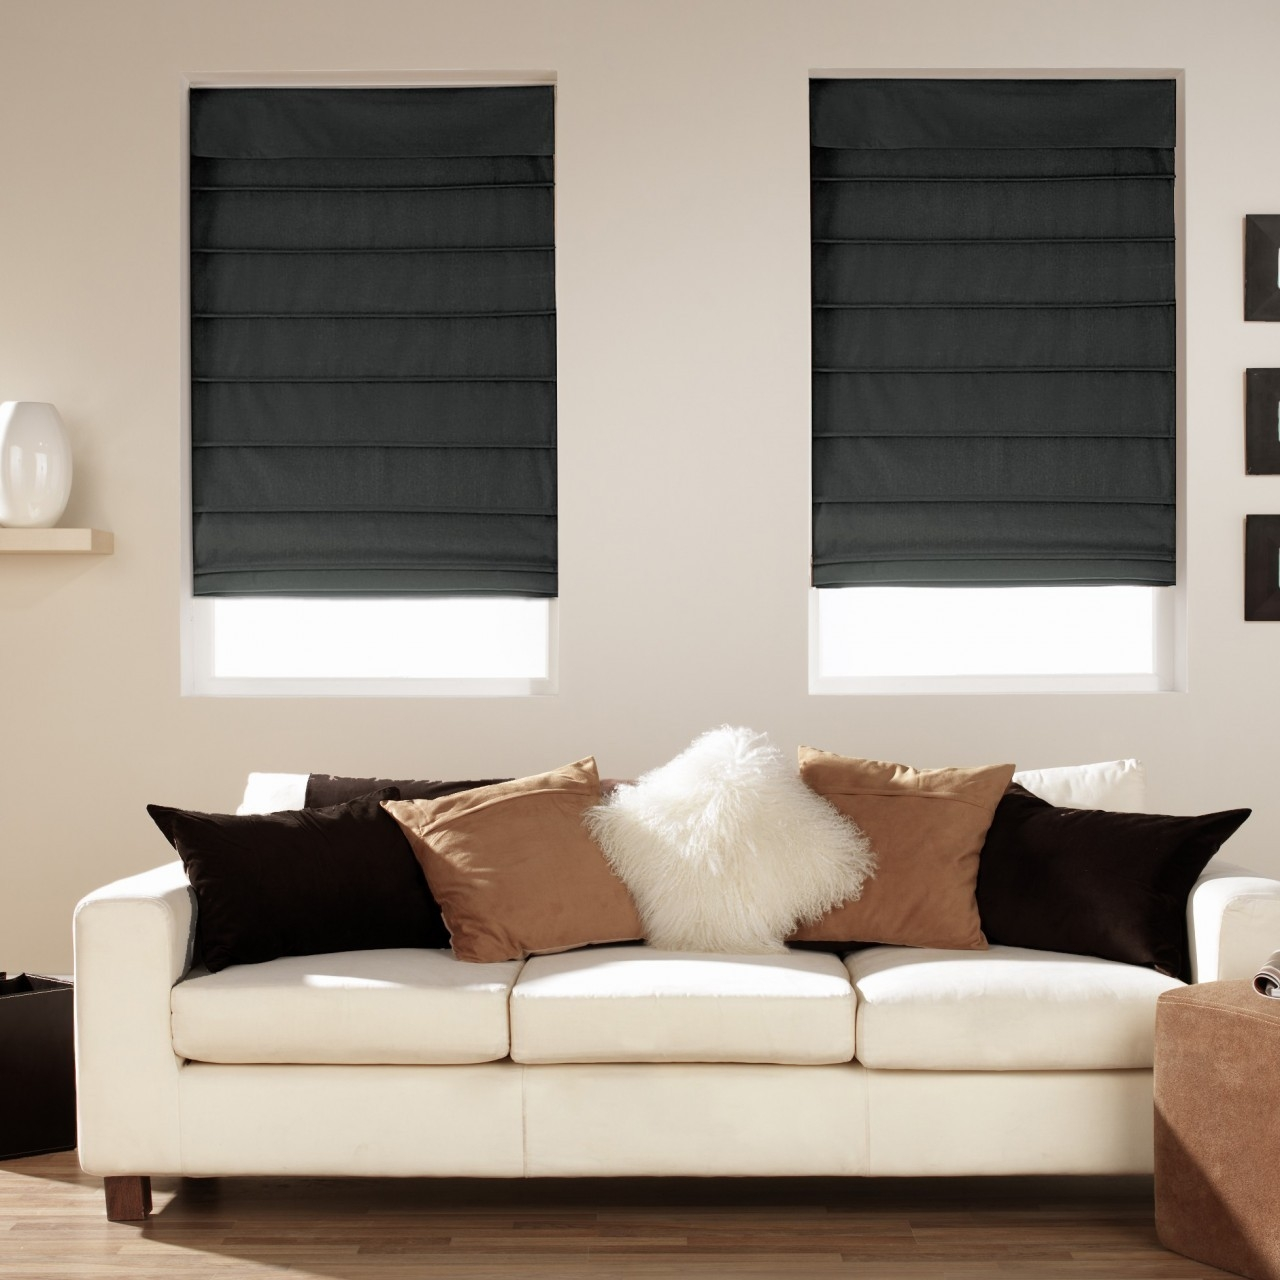 Blackout Roman Blind Natural Bamboo Roll Up Blind 60cm Roman Regarding Roman Blinds Black (View 2 of 15)